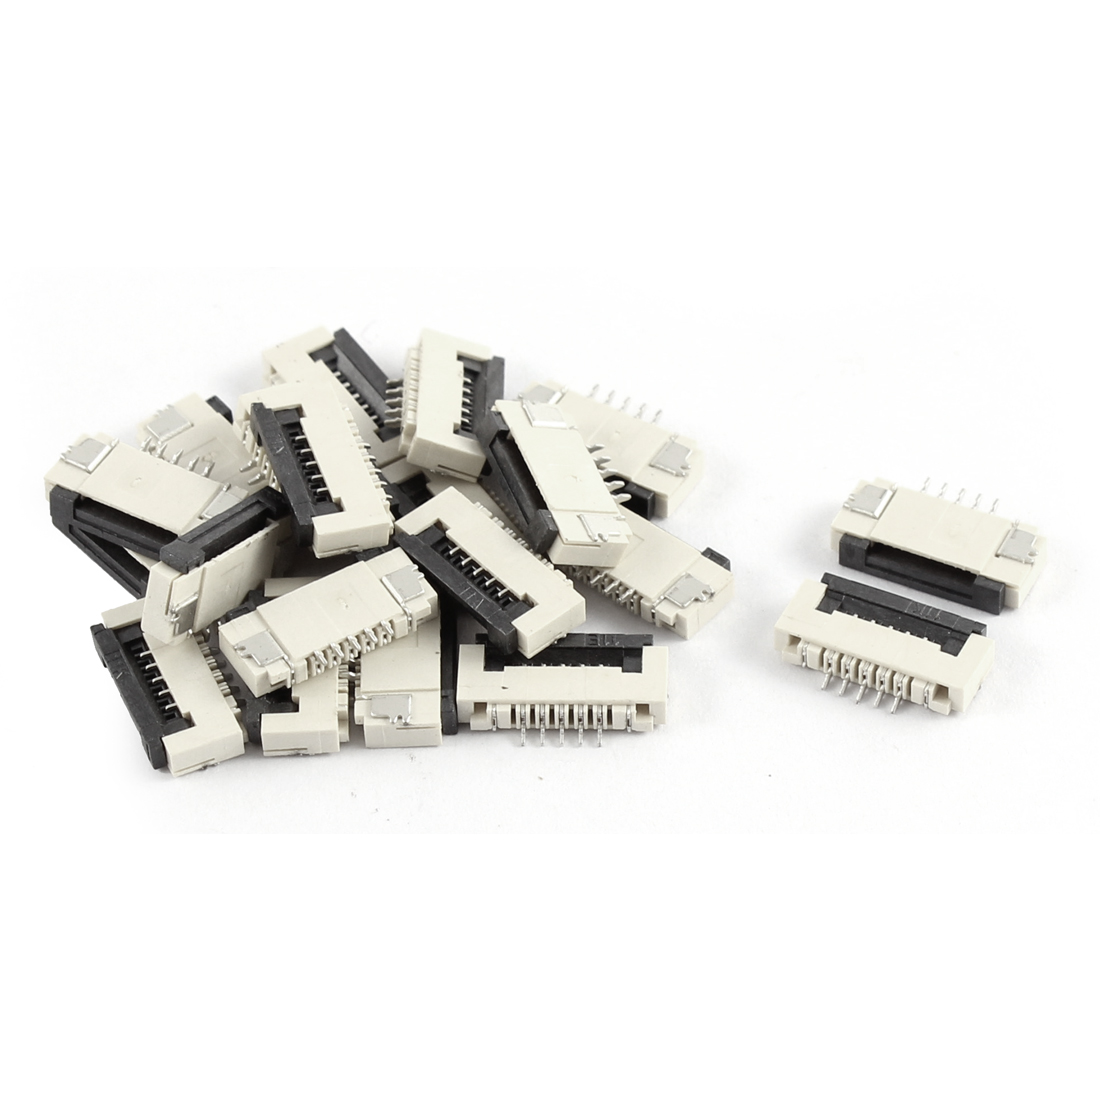 20Pcs Clamshell Type Bottom Port 5Pin 1.0mm Pitch FFC FPC Sockets Connector